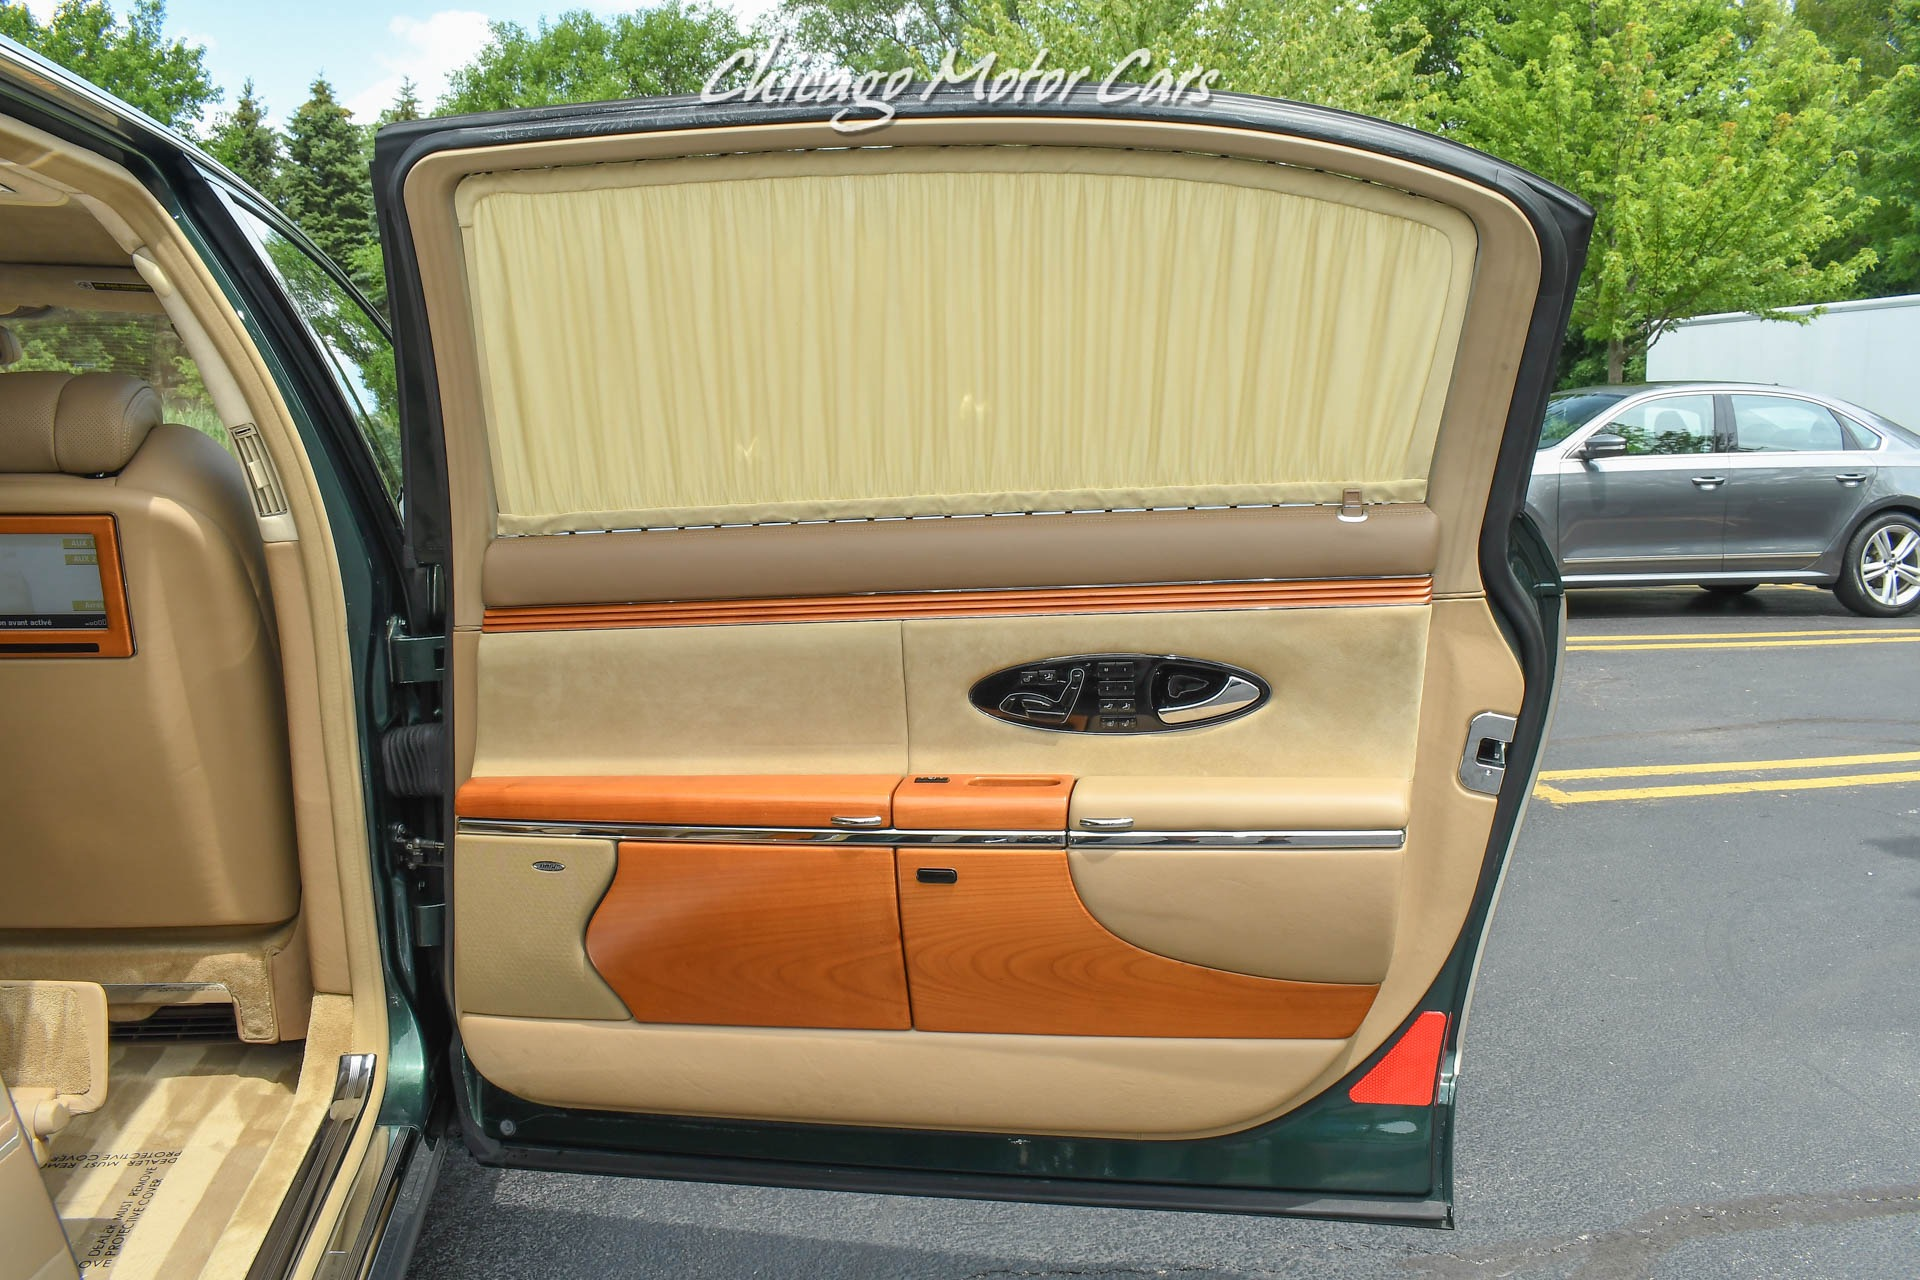 Used-2004-Maybach-62-PANO-ROOF-DUO-TONE-REAR-WINDOW-CURTAINS